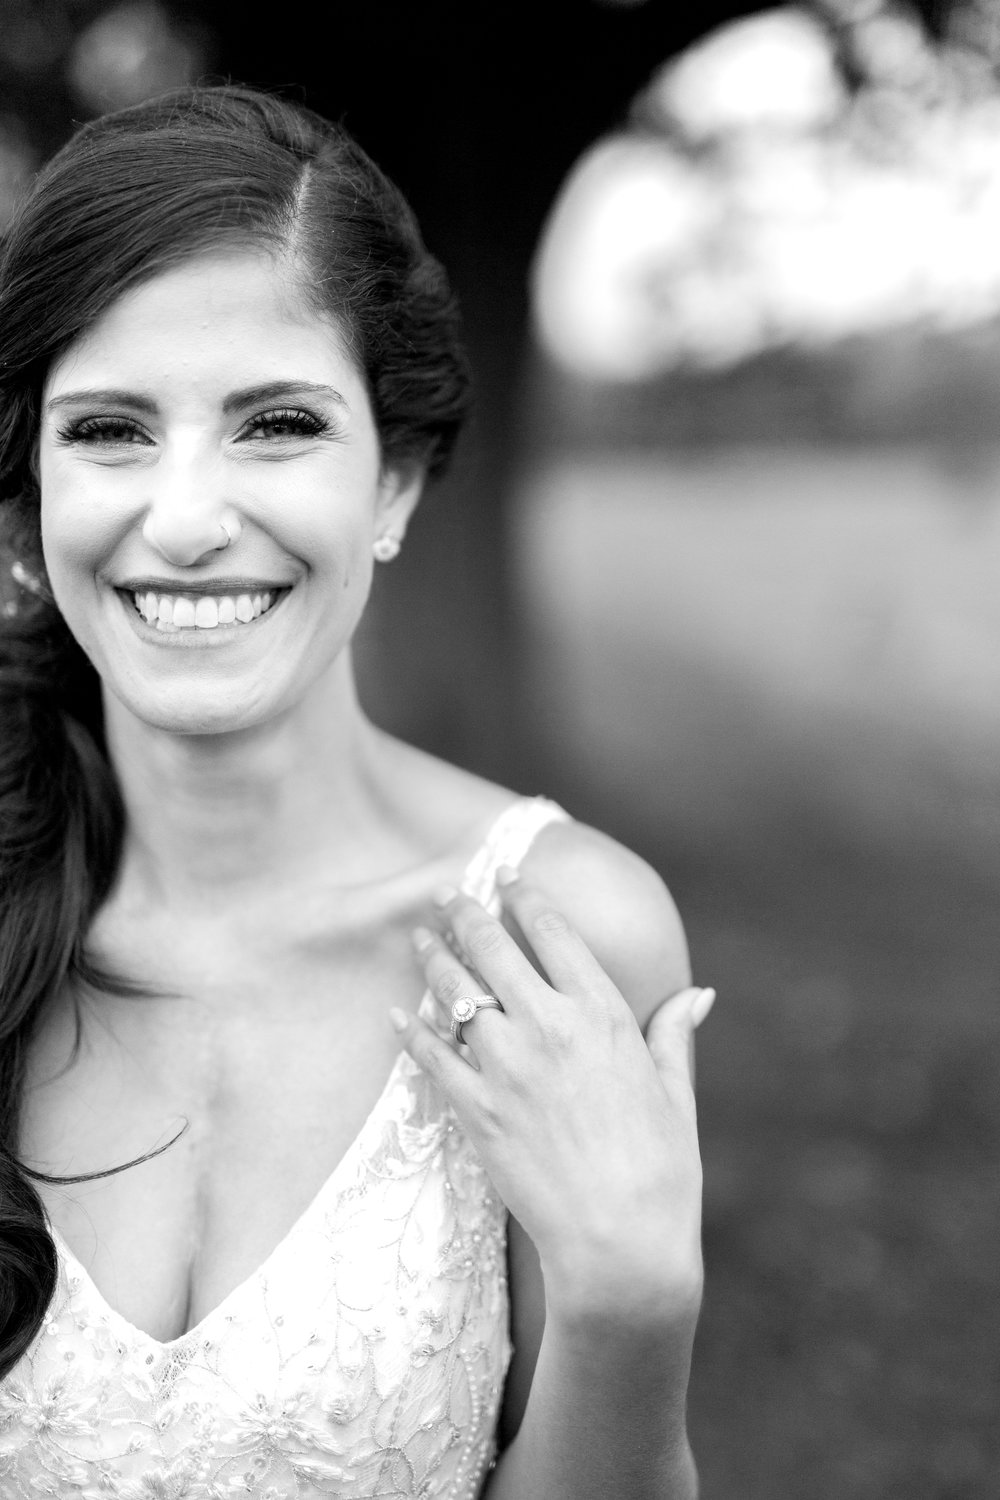 Amir-Golbazi-Danielle-Giroux-Photography_Toronto-Wedding_Cedarwood_Rachel-Paul_535.jpg